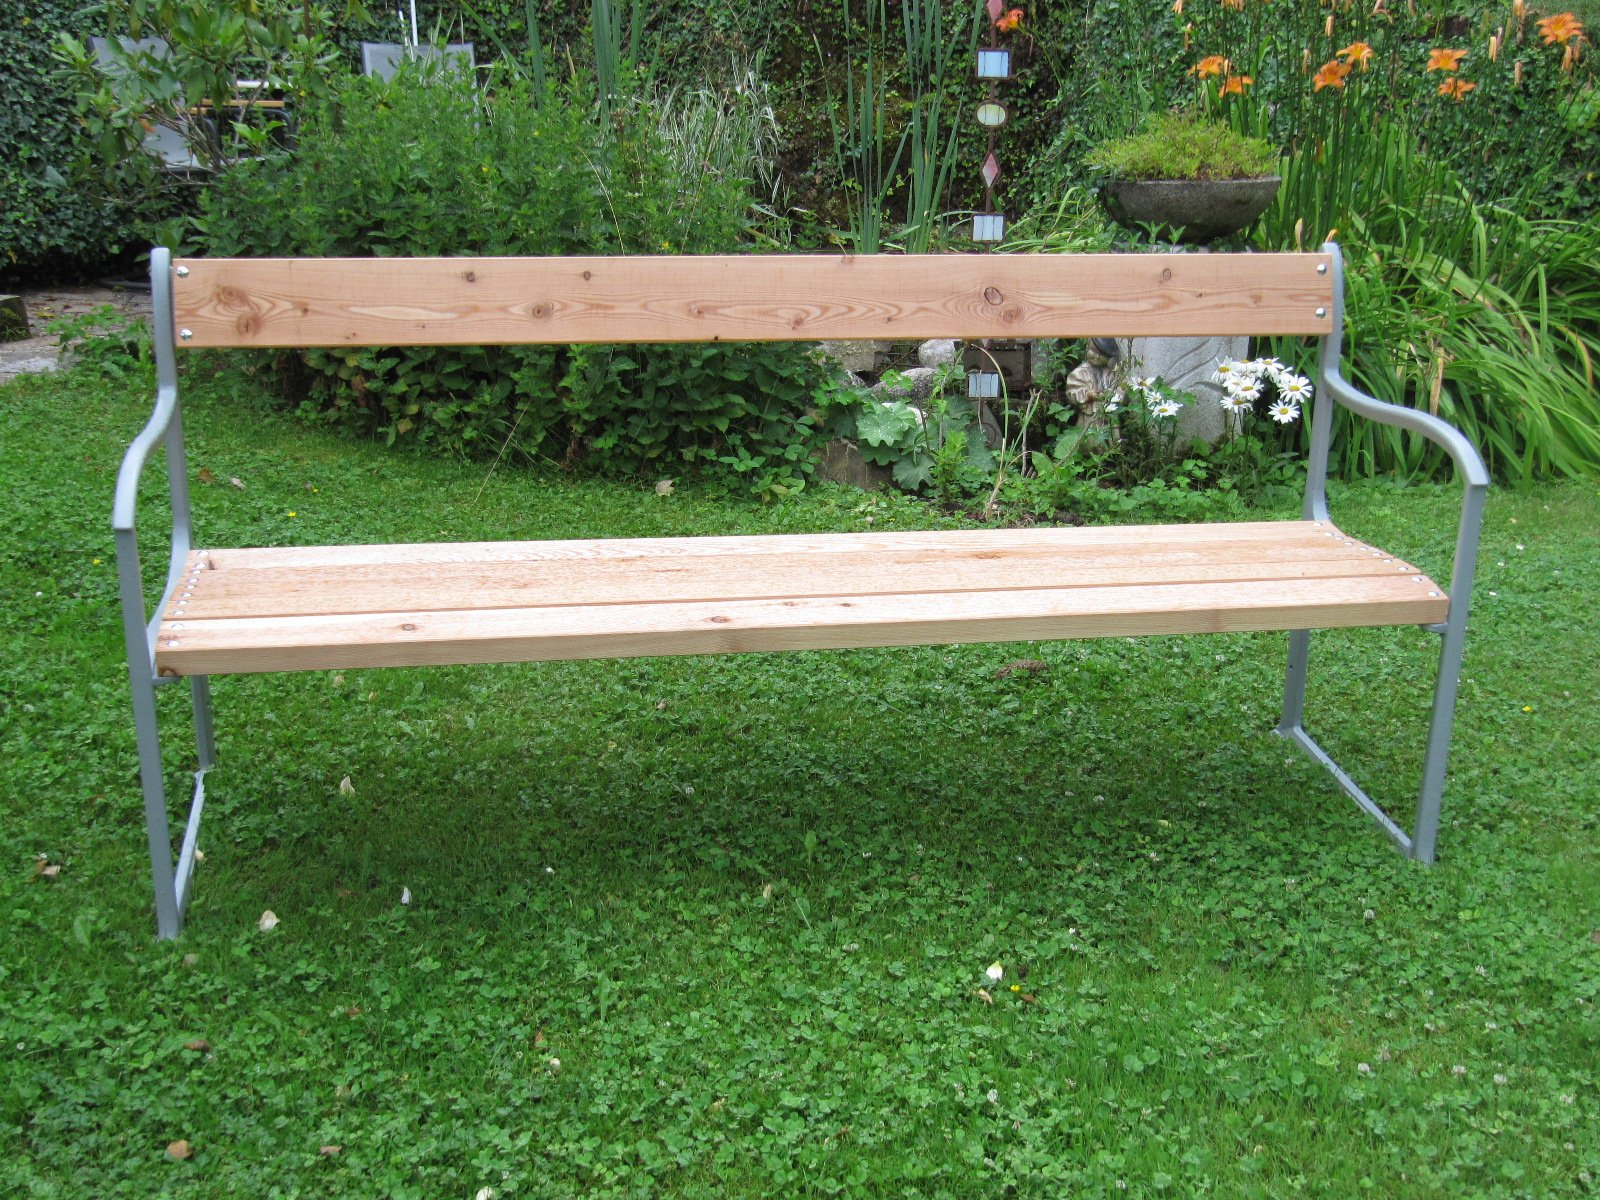 Model 561 Park Bench By Josef Hoffmann 1900s For Sale At Pamono